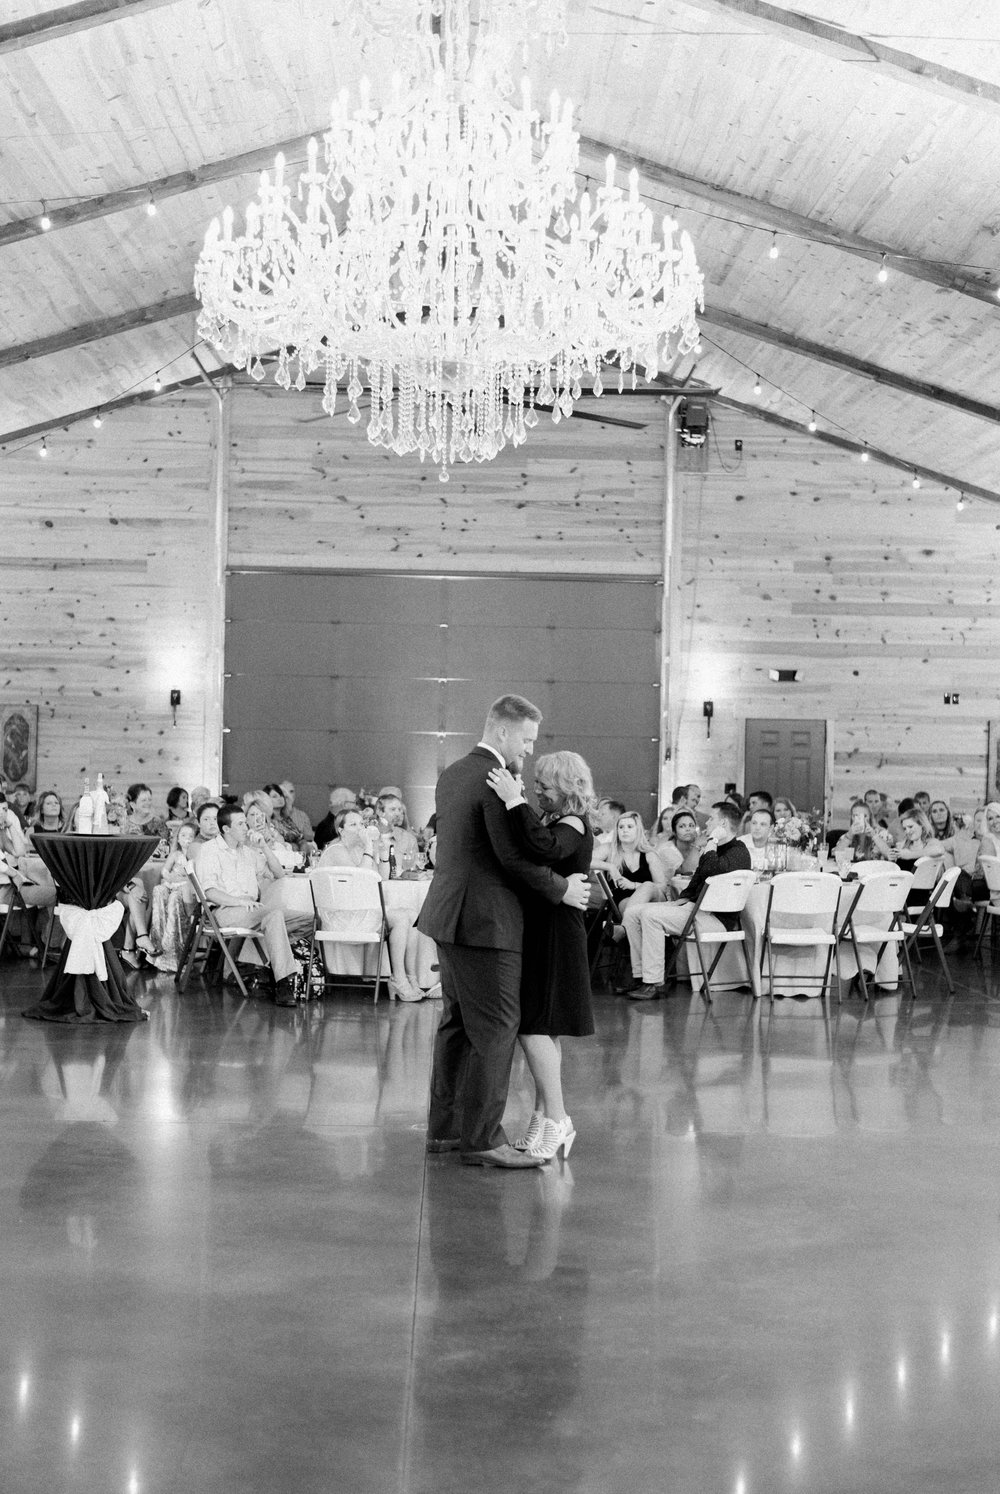 atkinson farms_VirginiaWeddingPhotographer_LynchburgWeddingPhotographer_DylanandLauren 49.jpg